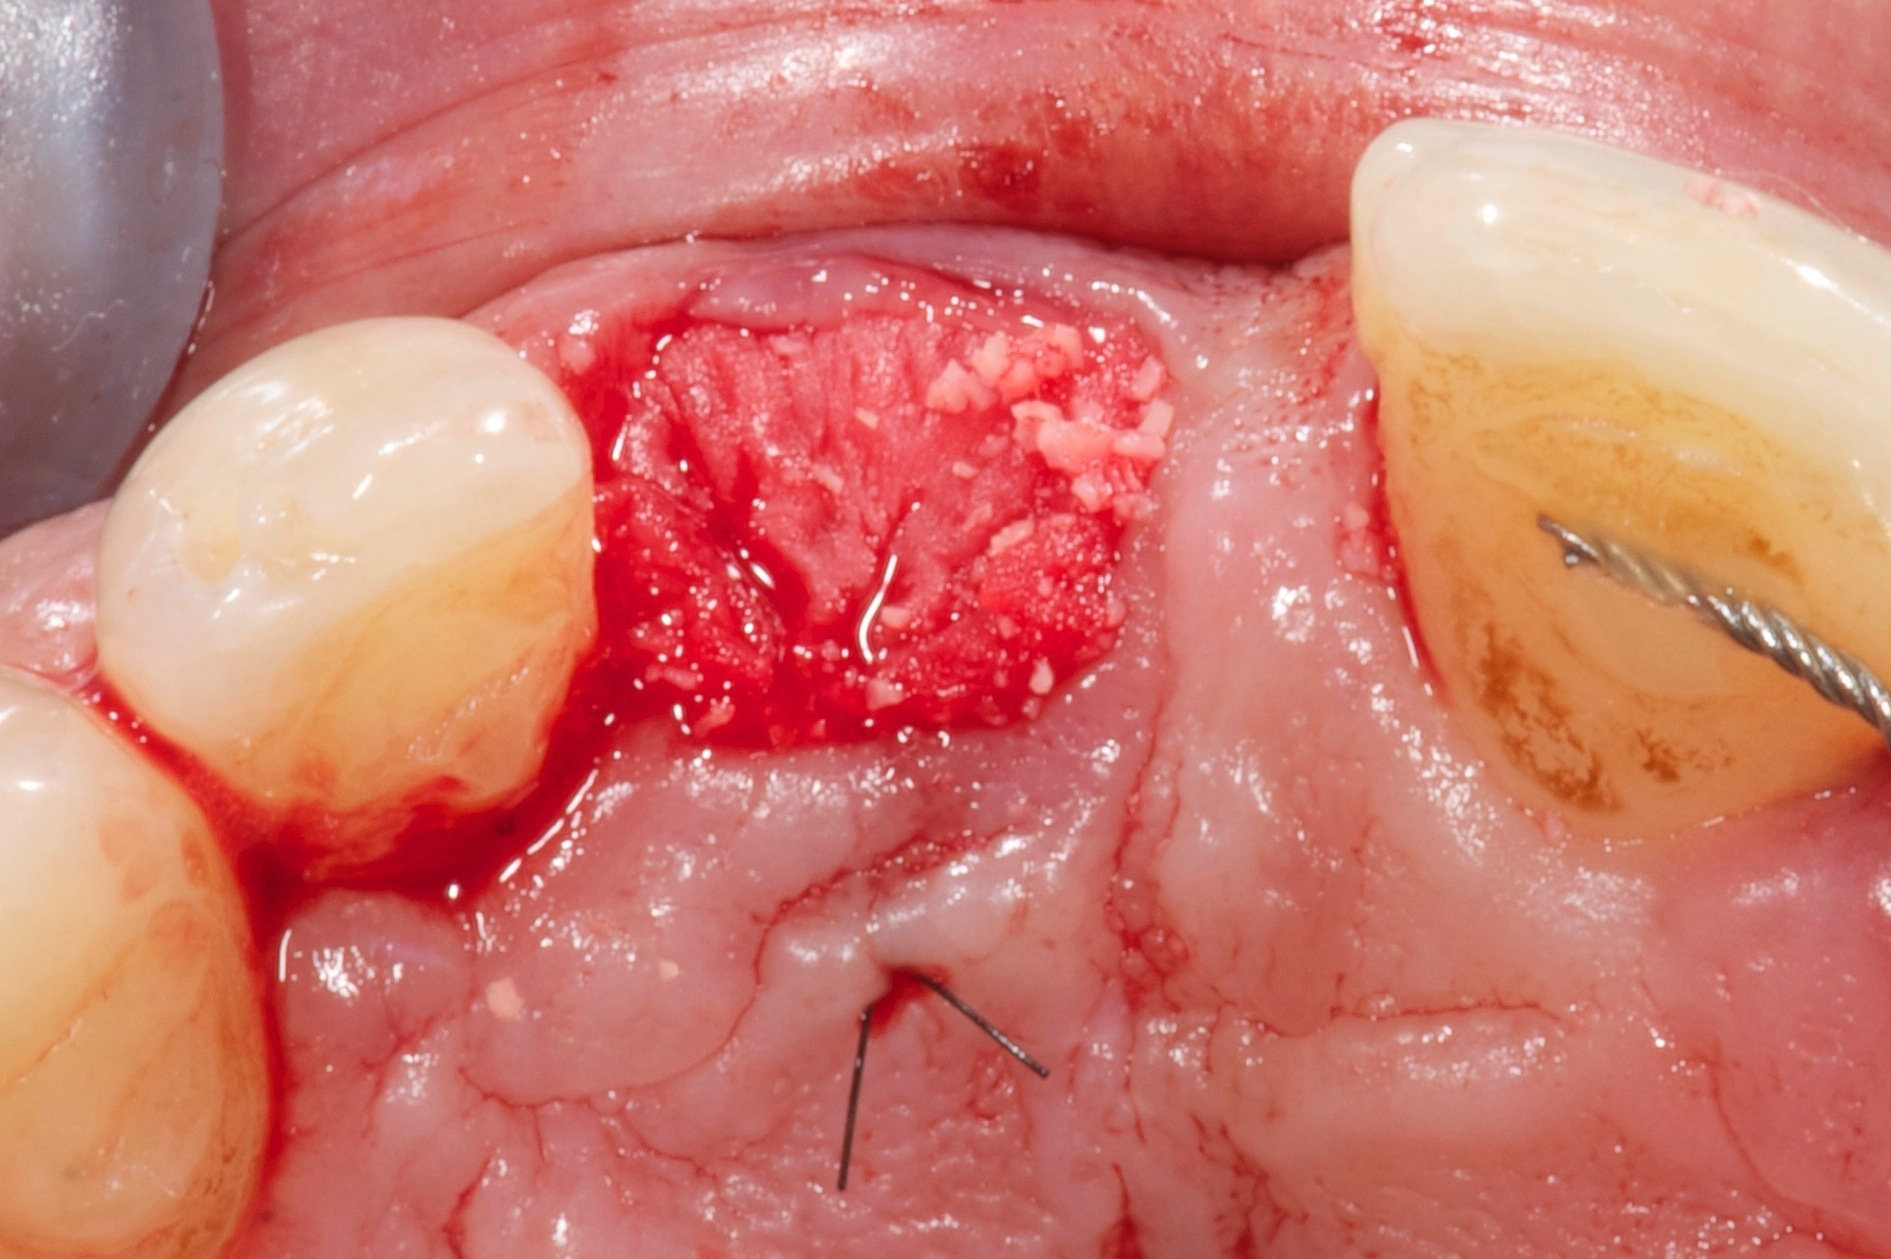 single tooth extraction and implant rehabilitation